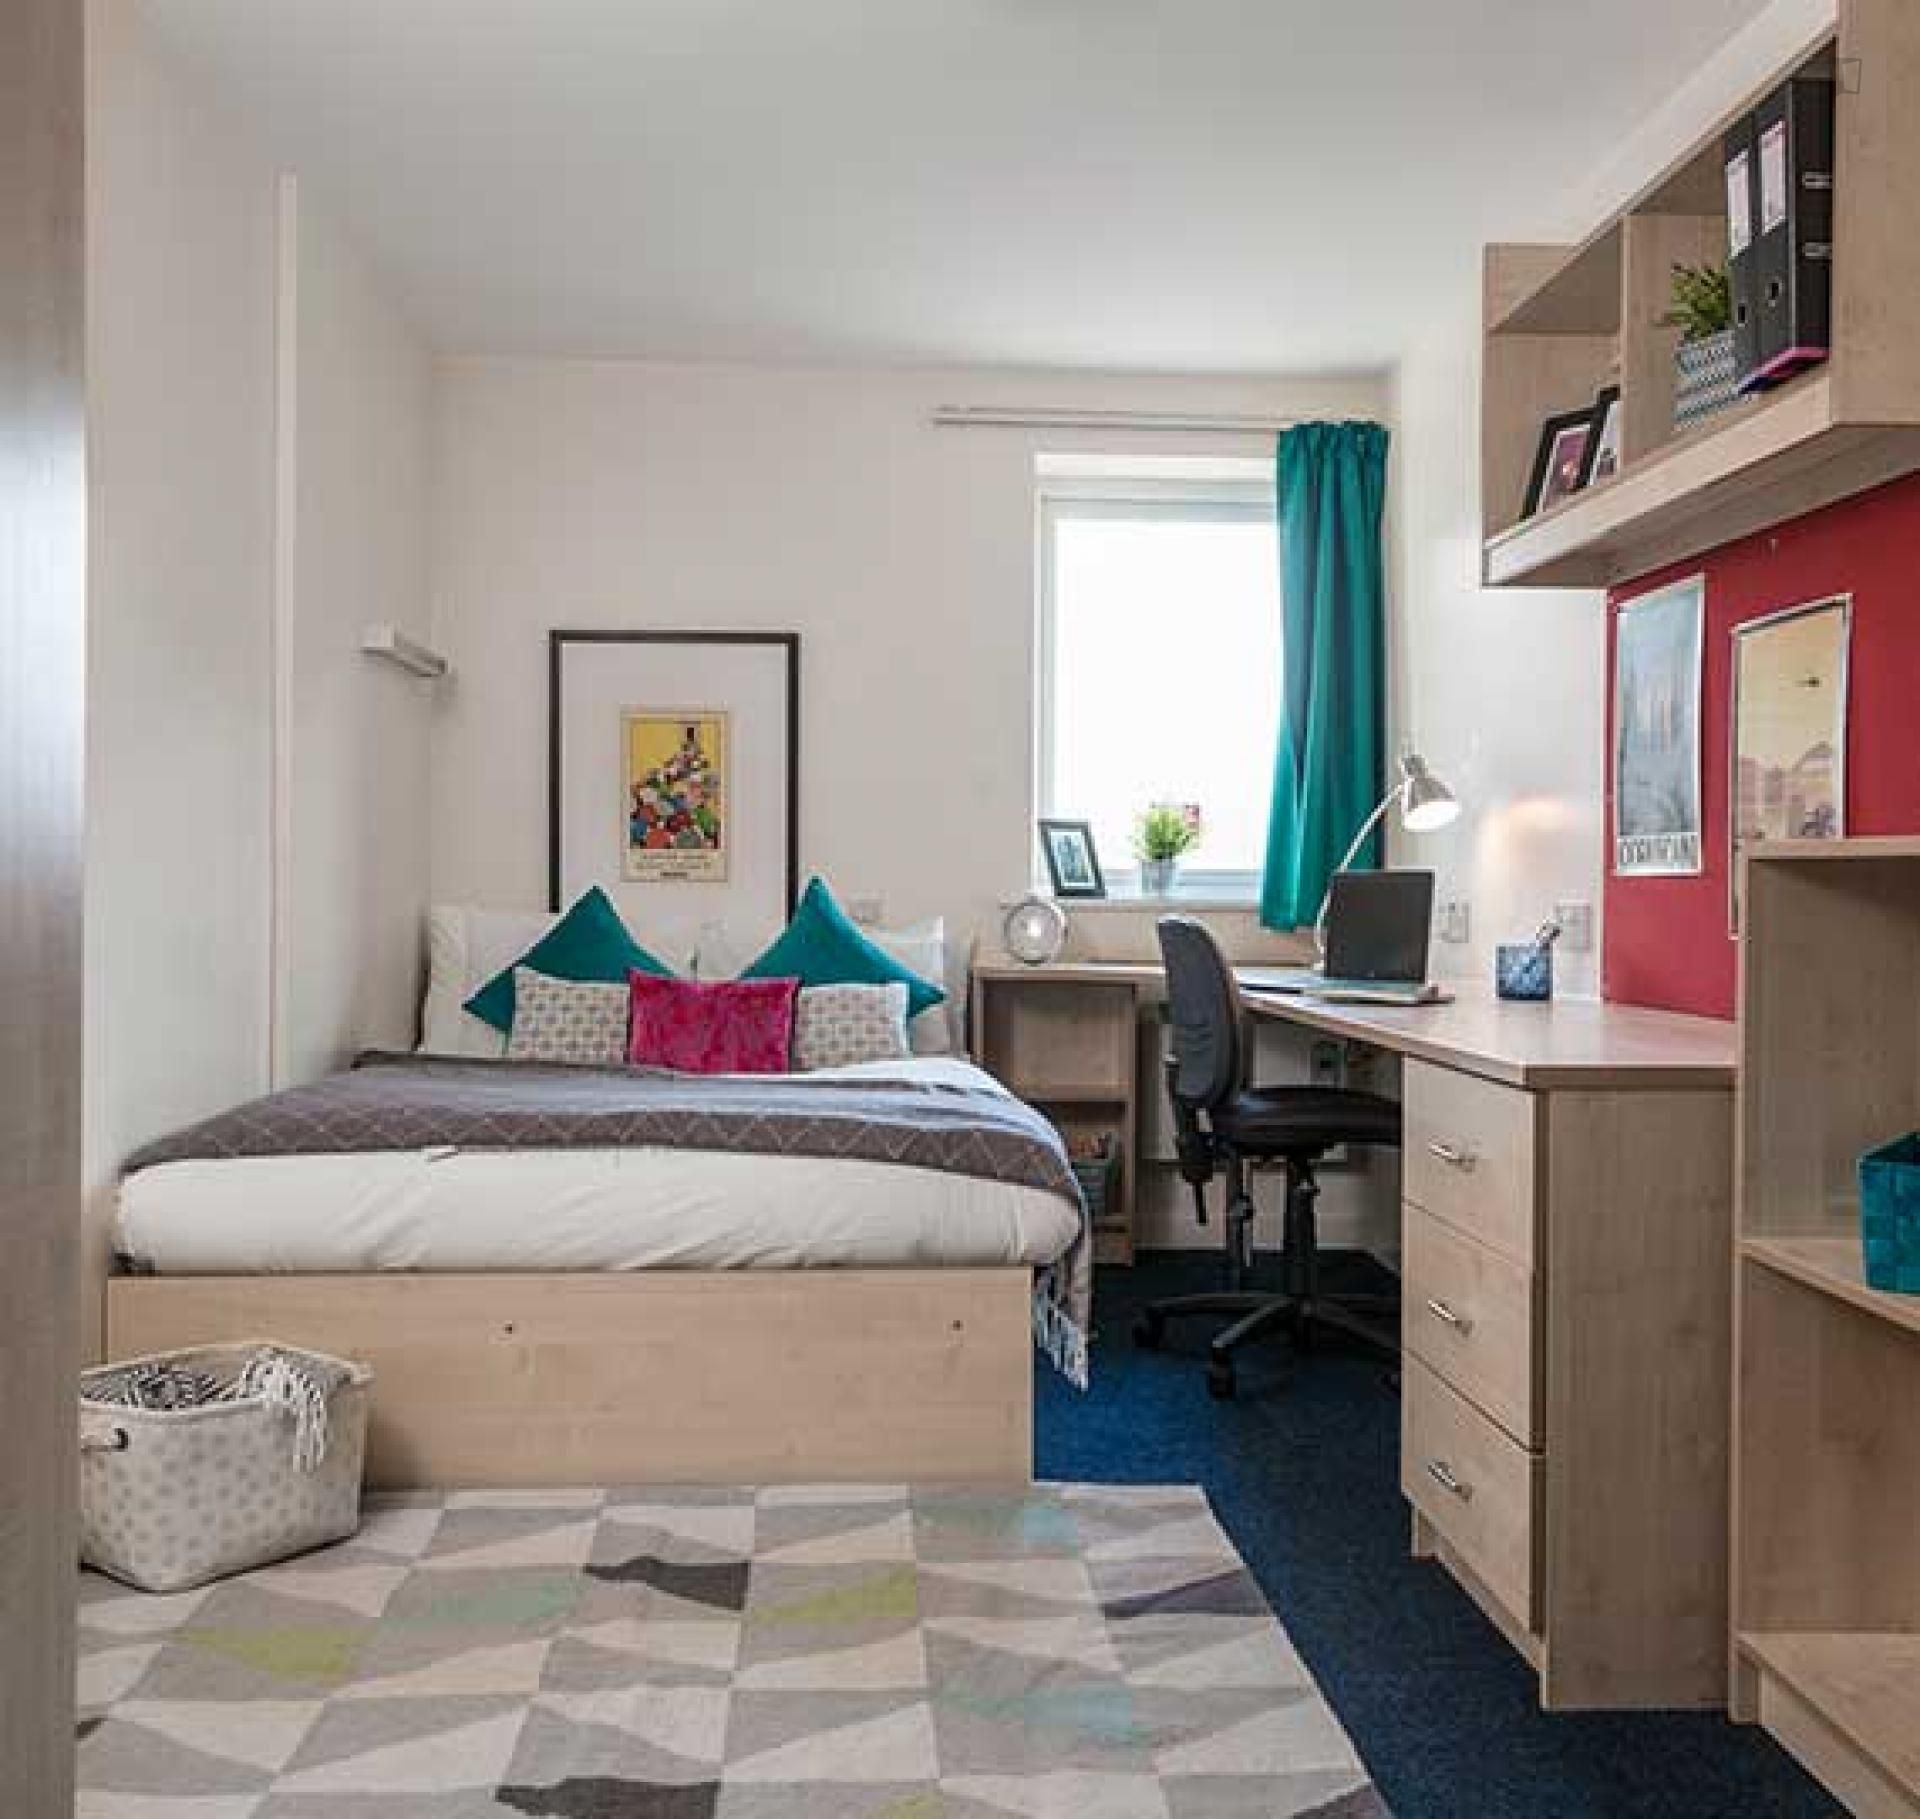 Amazing double ensuite bedroom in a 4-bedroom apartment ...